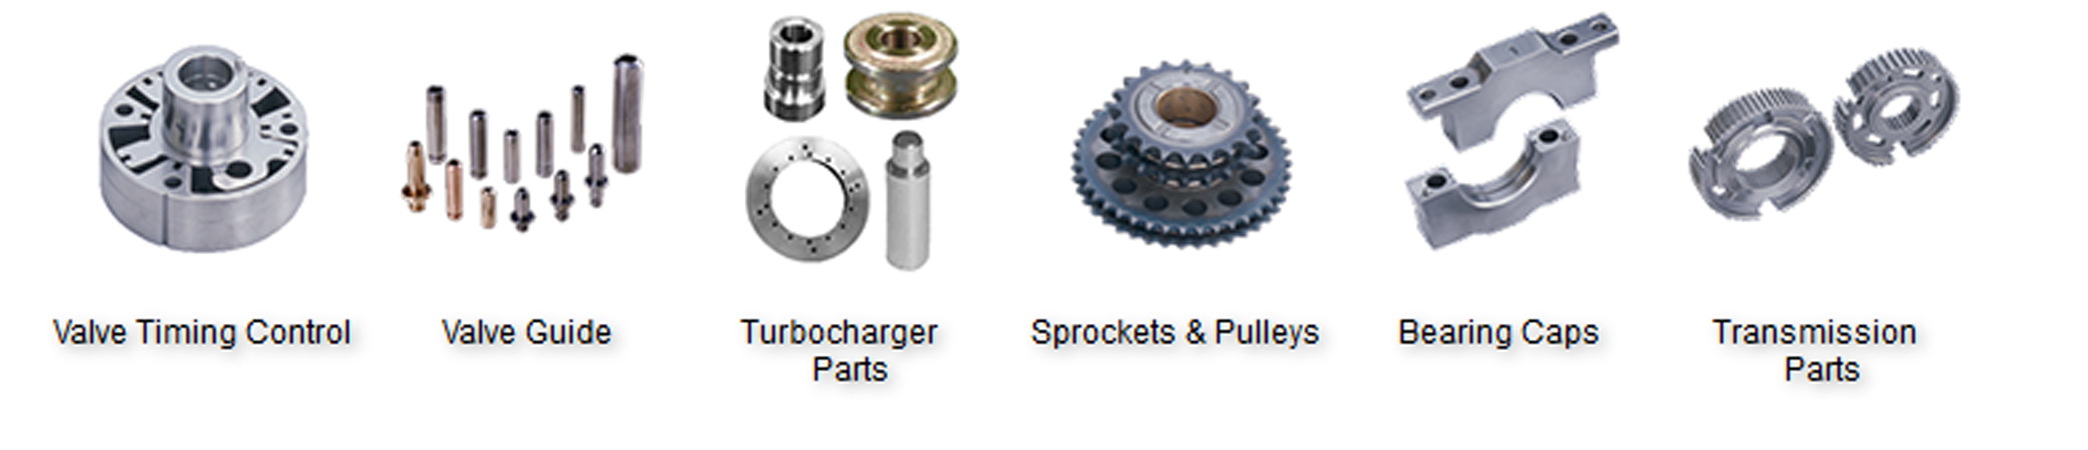 Products made by Hitachi.jpg